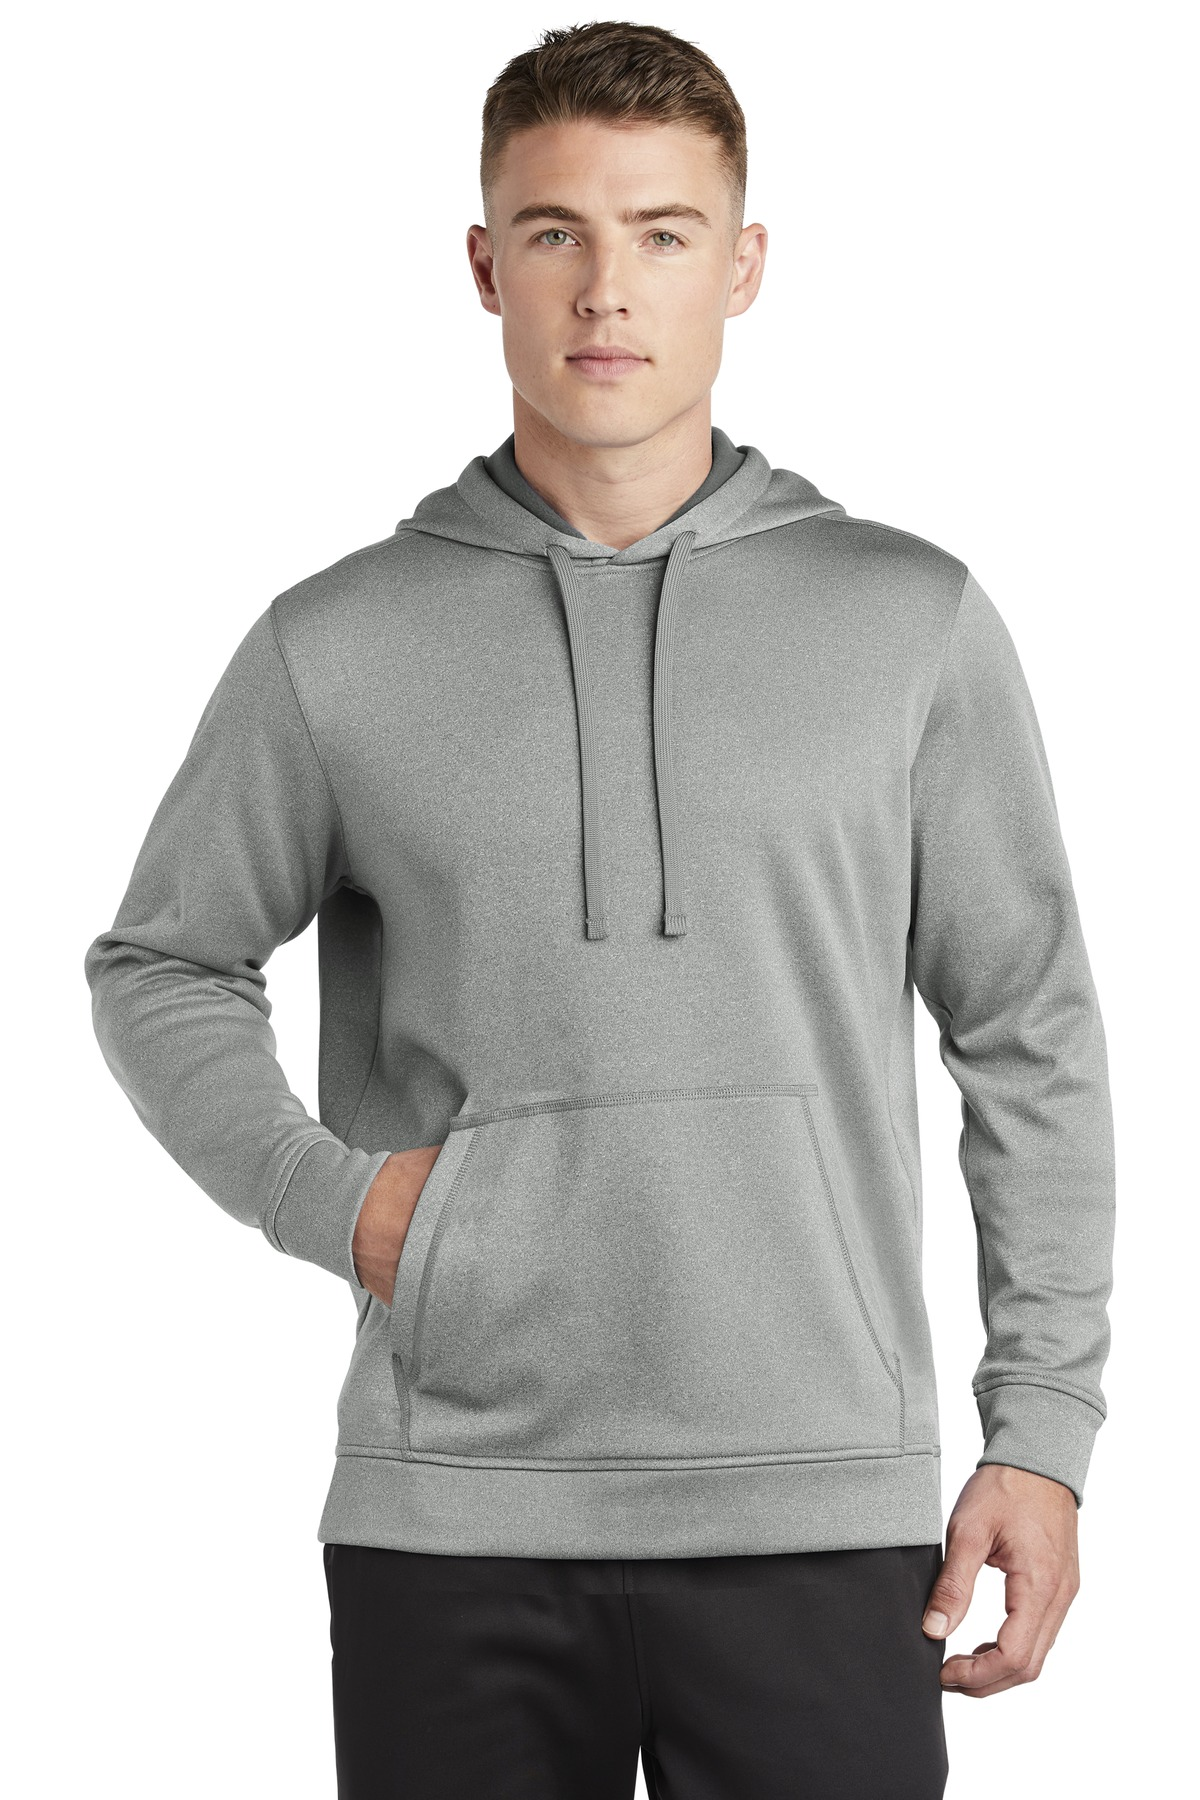 Sport-Tek  ®  PosiCharge  ®  Sport-Wick  ®  Heather Fleece Hooded Pullover. ST264 - Dark Silver Heather